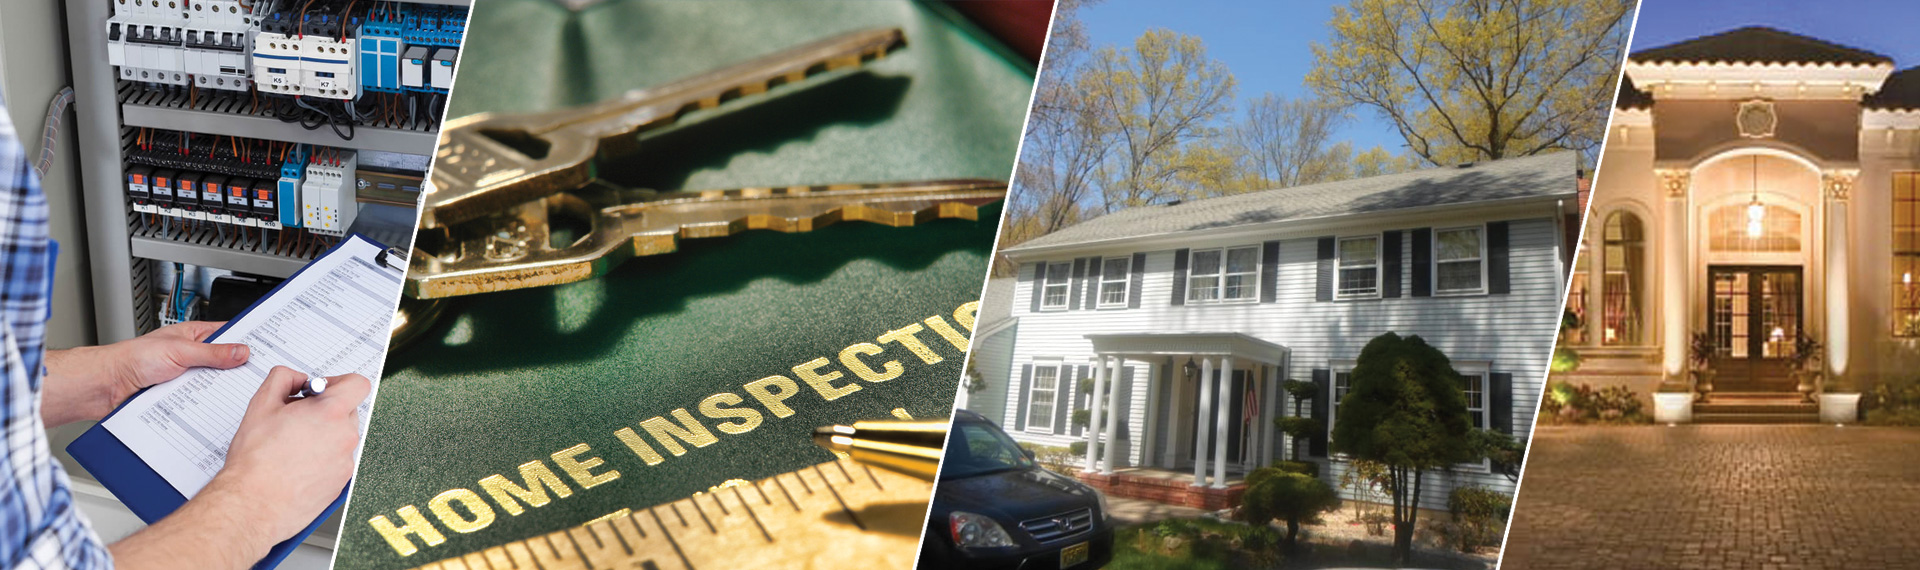 AAA House Doctors Engineers & Home Inspectors Dunellen NJ